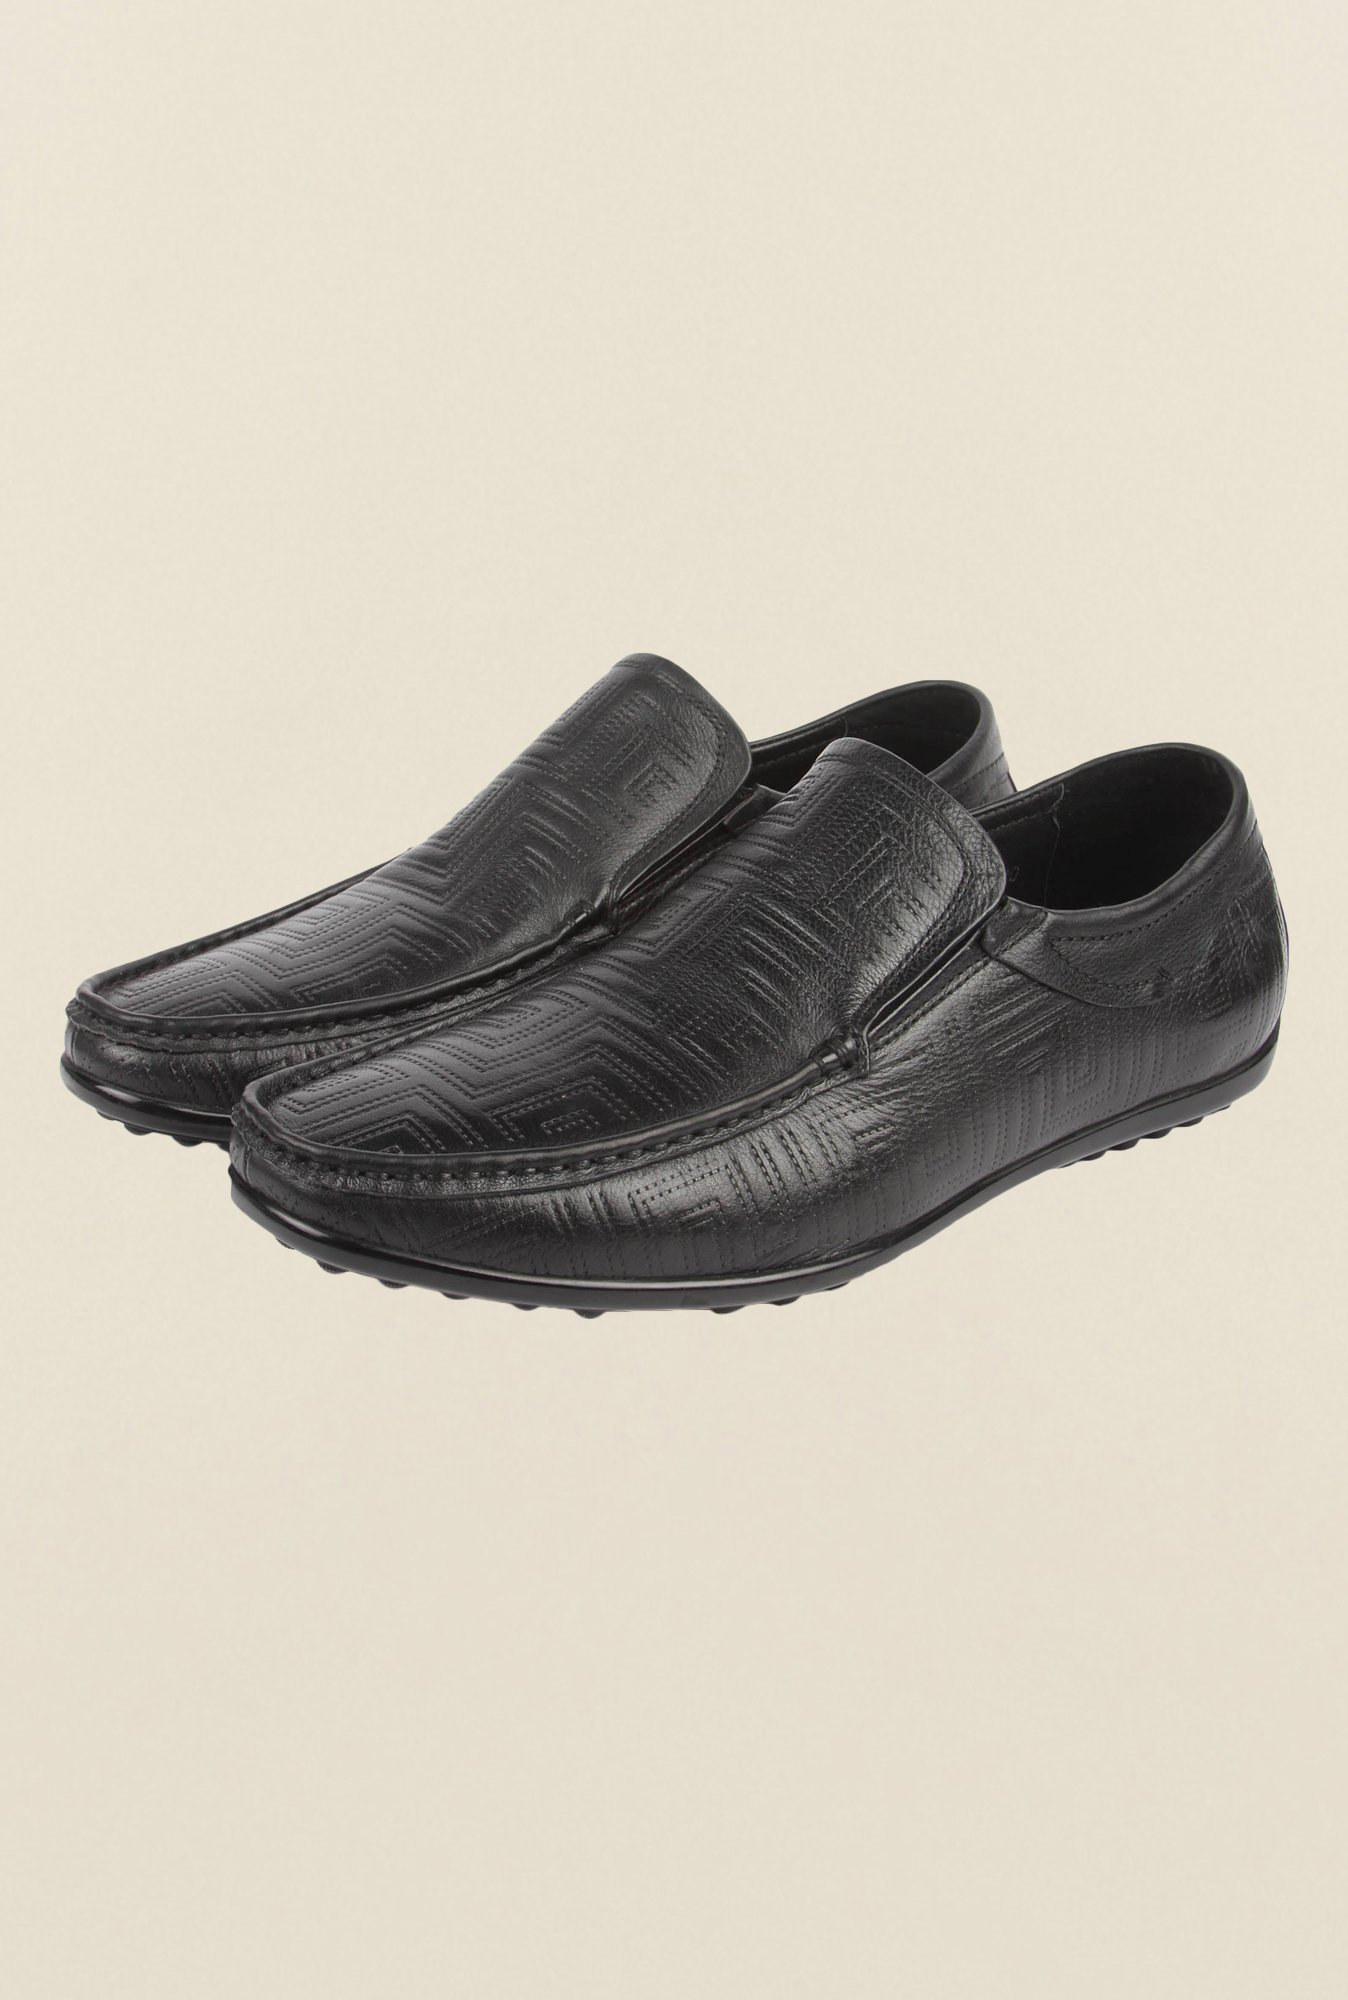 Cobblerz Black Casual Loafers